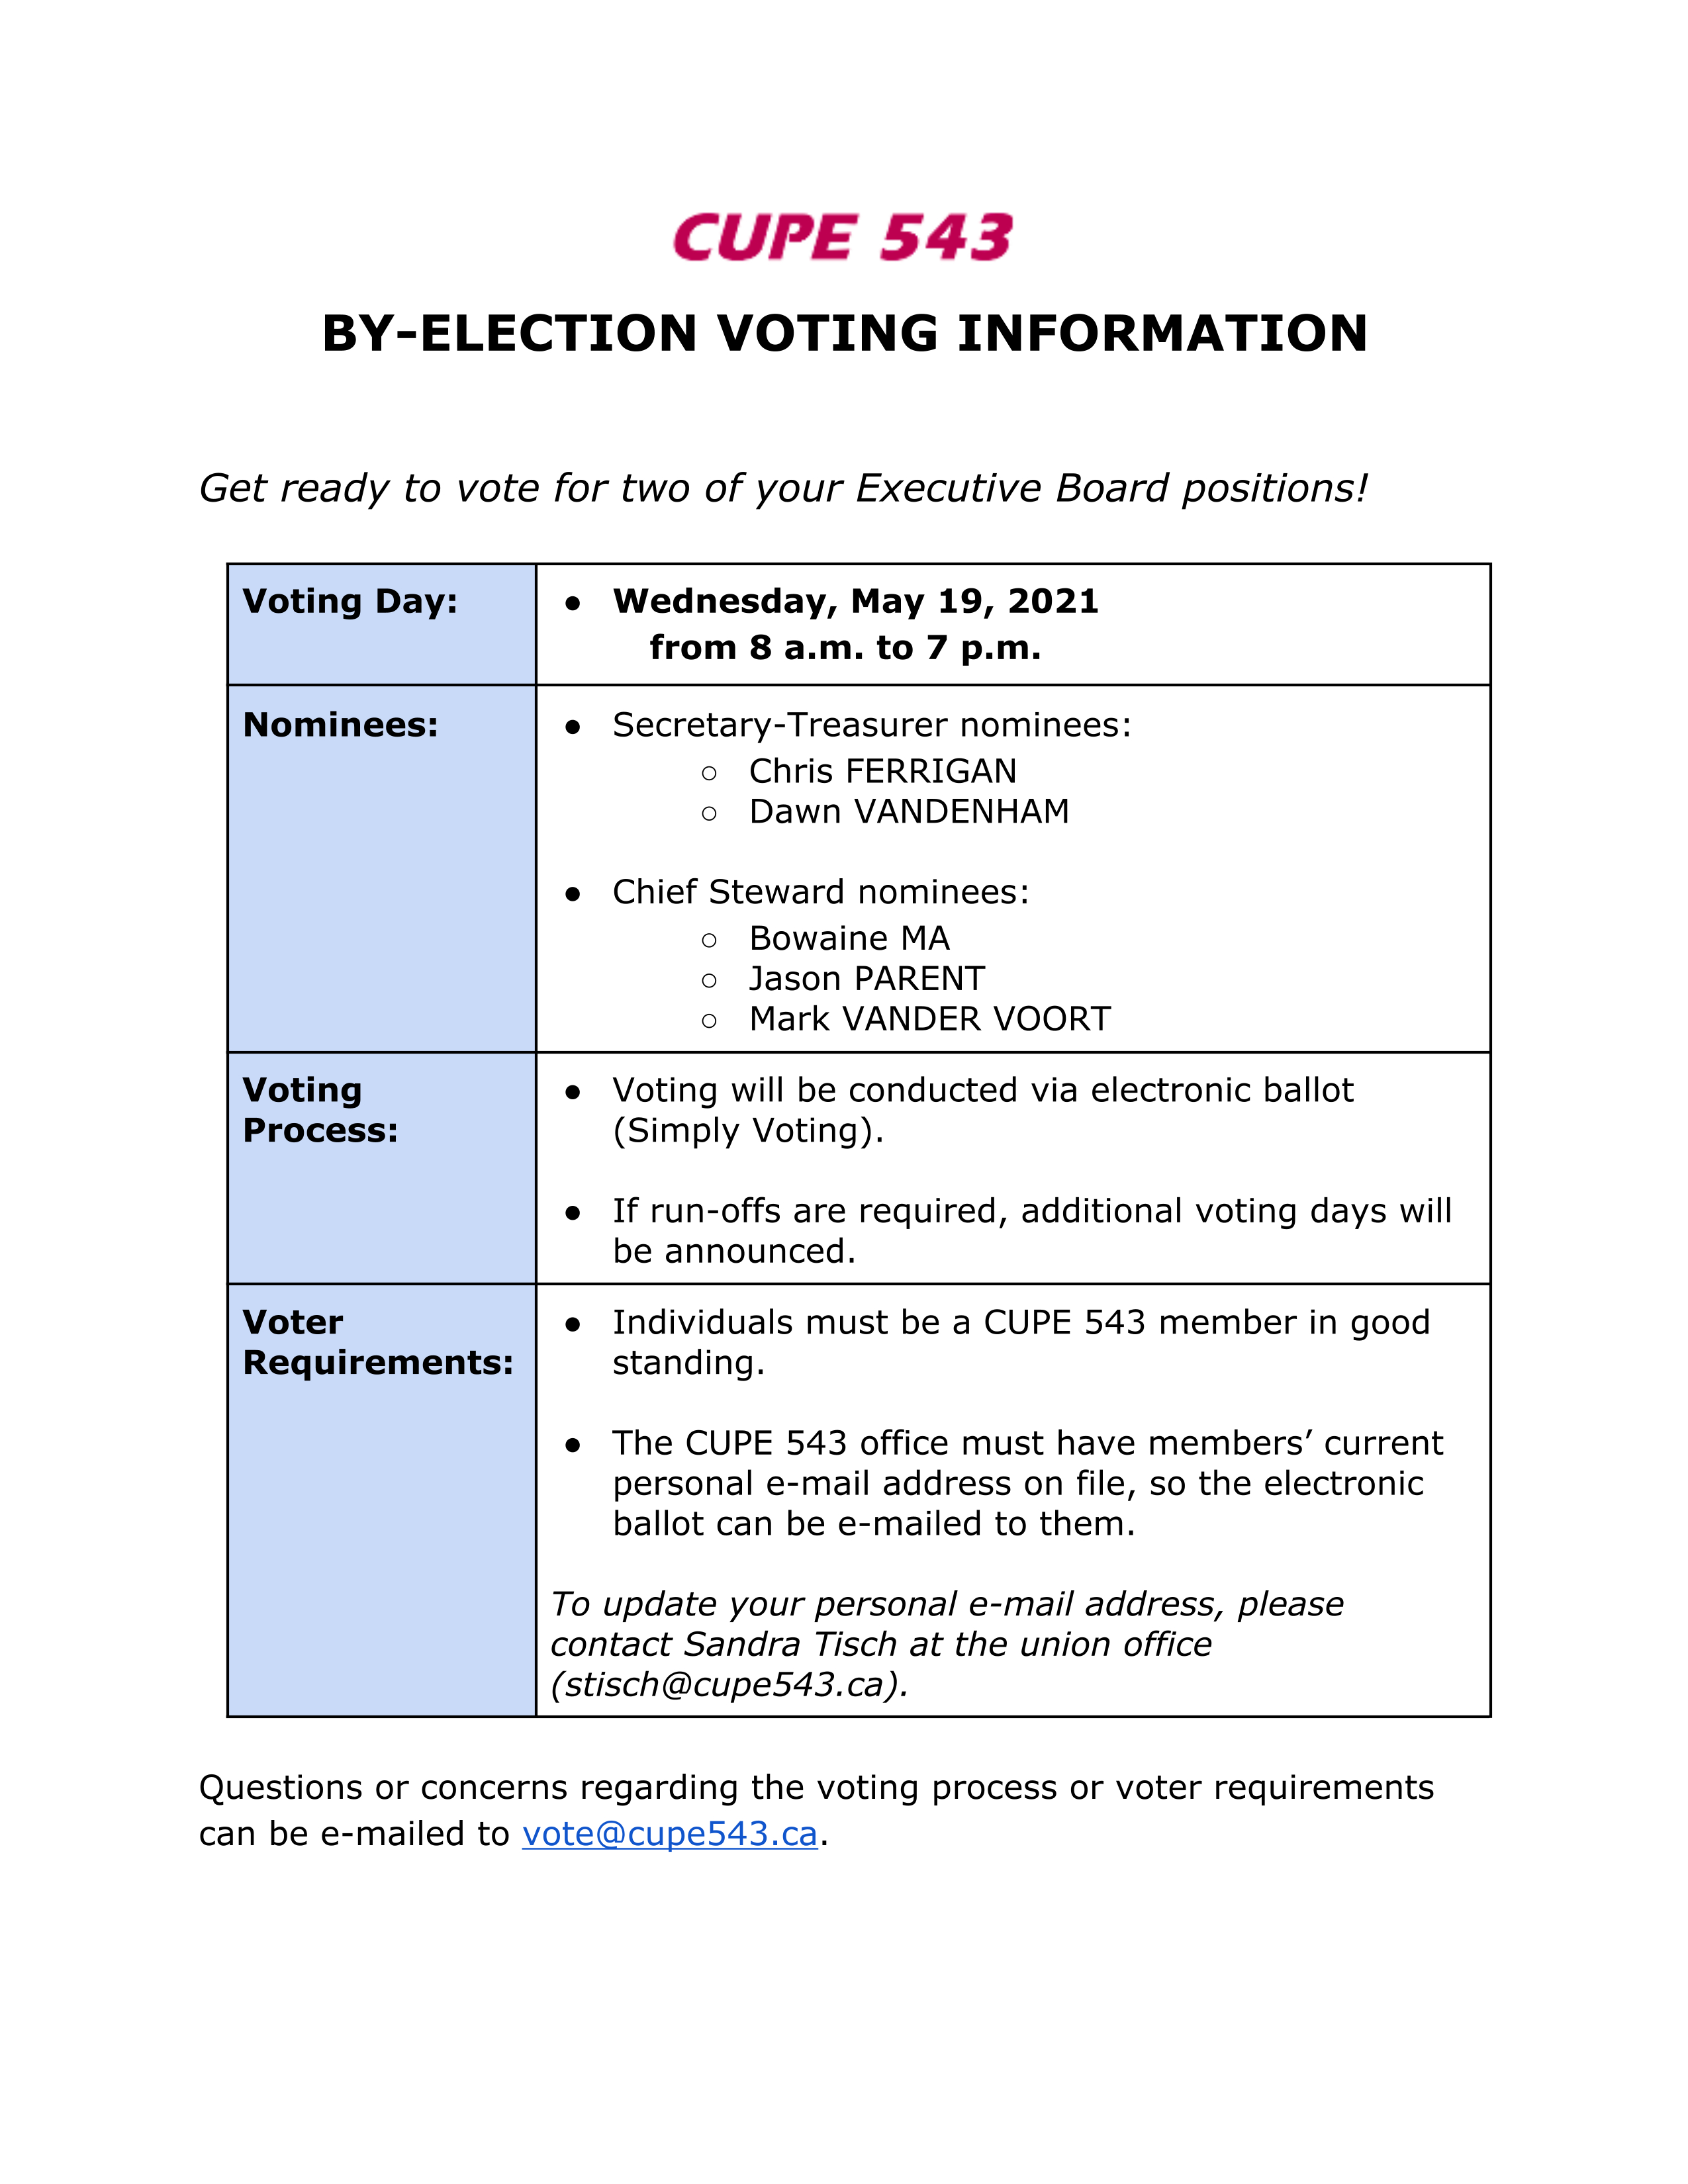 CUPE 543 By-Election - Electronic Voting @ Simply Voting